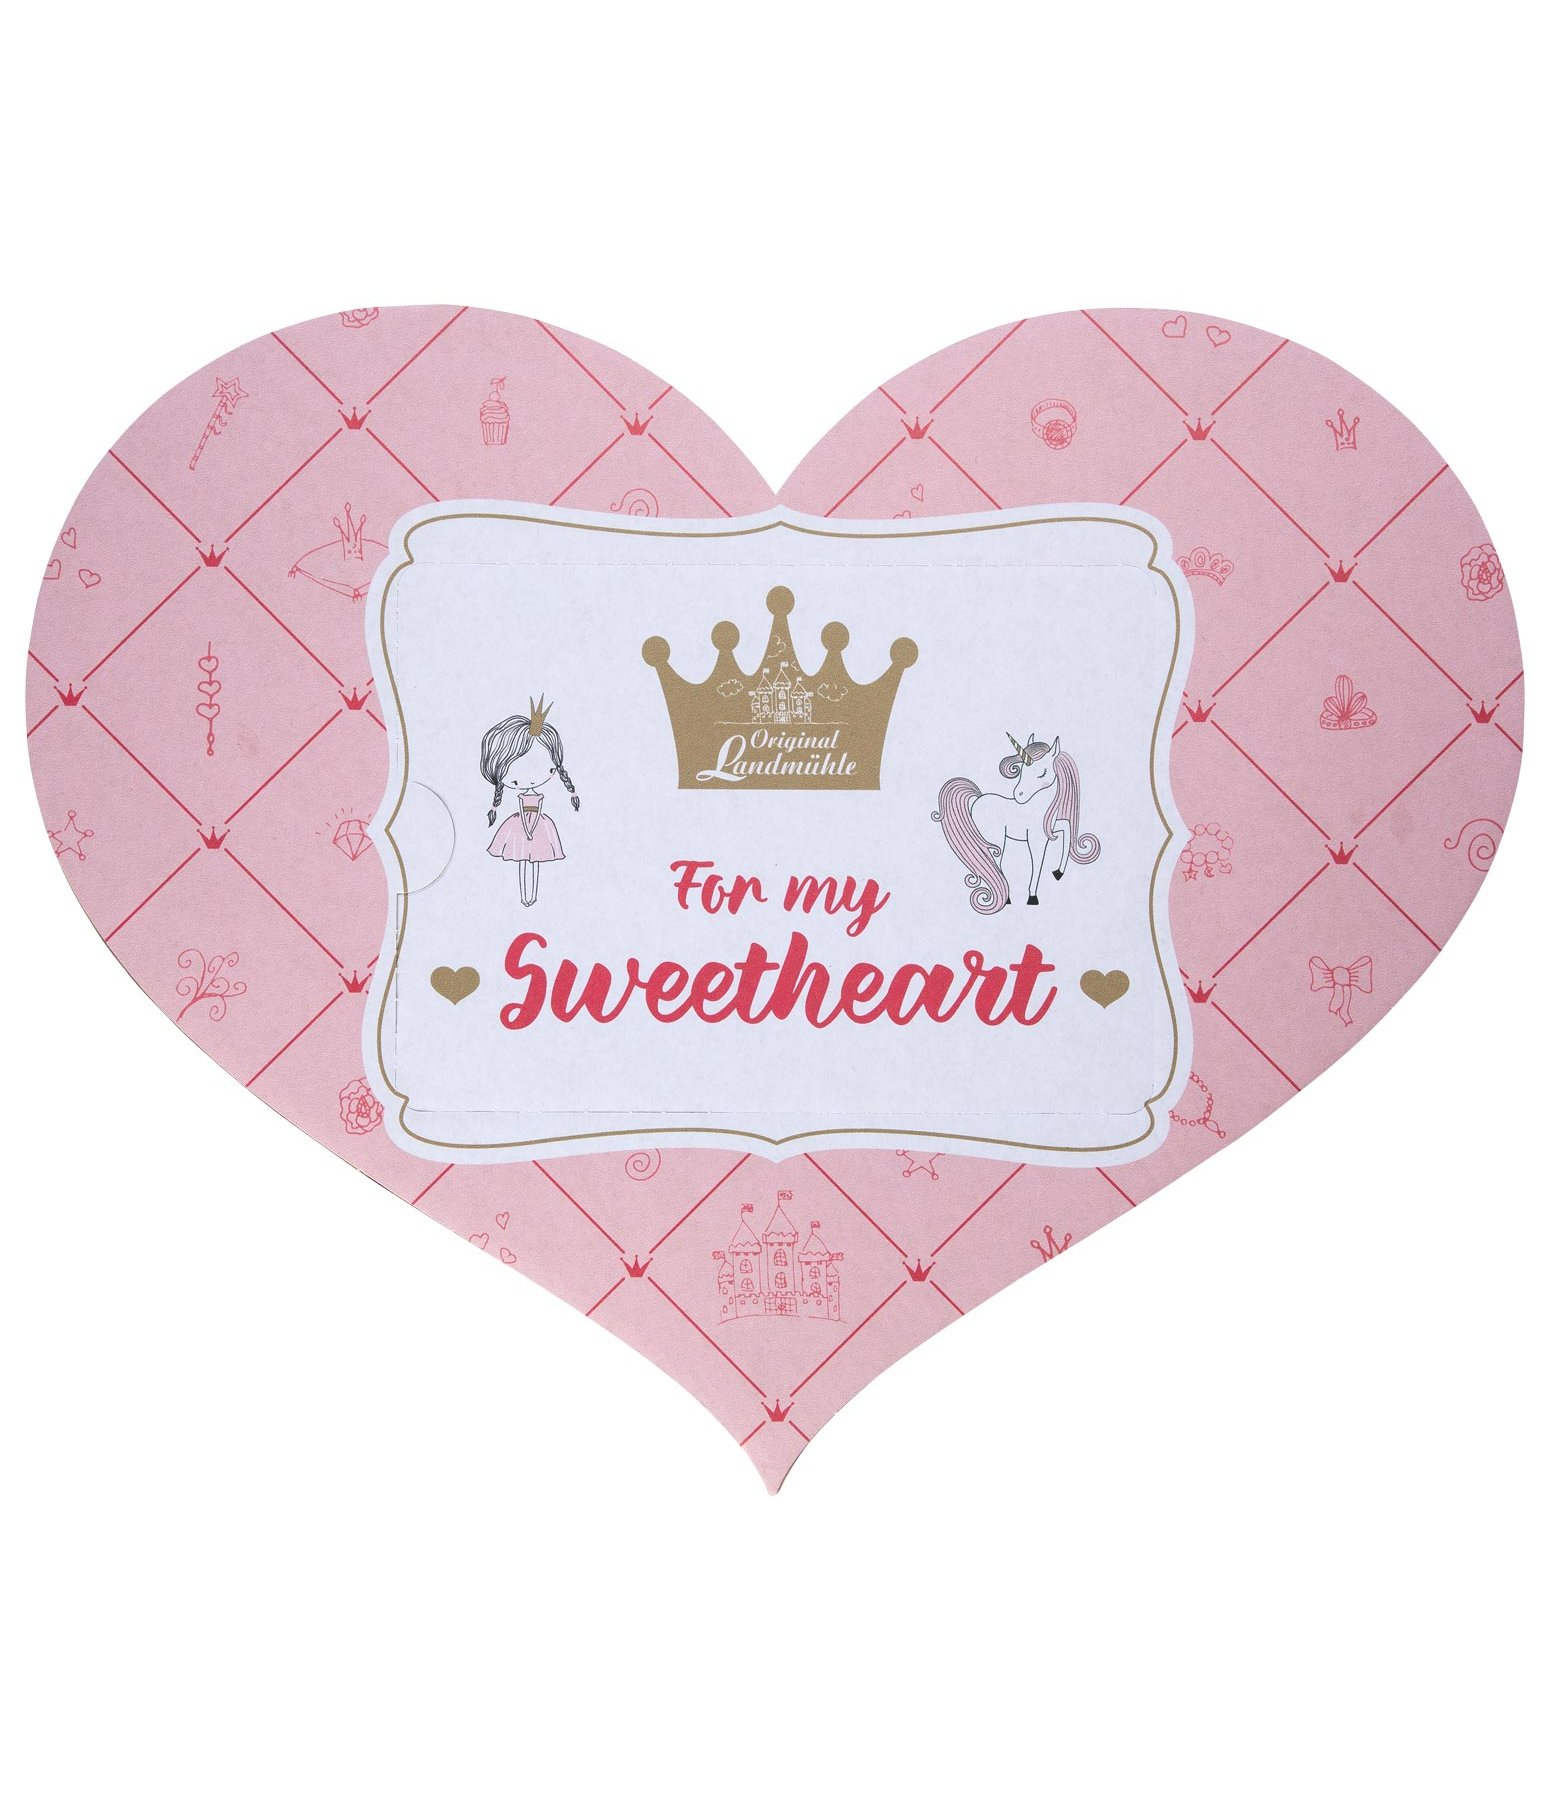 For my Sweetheart snoepjes